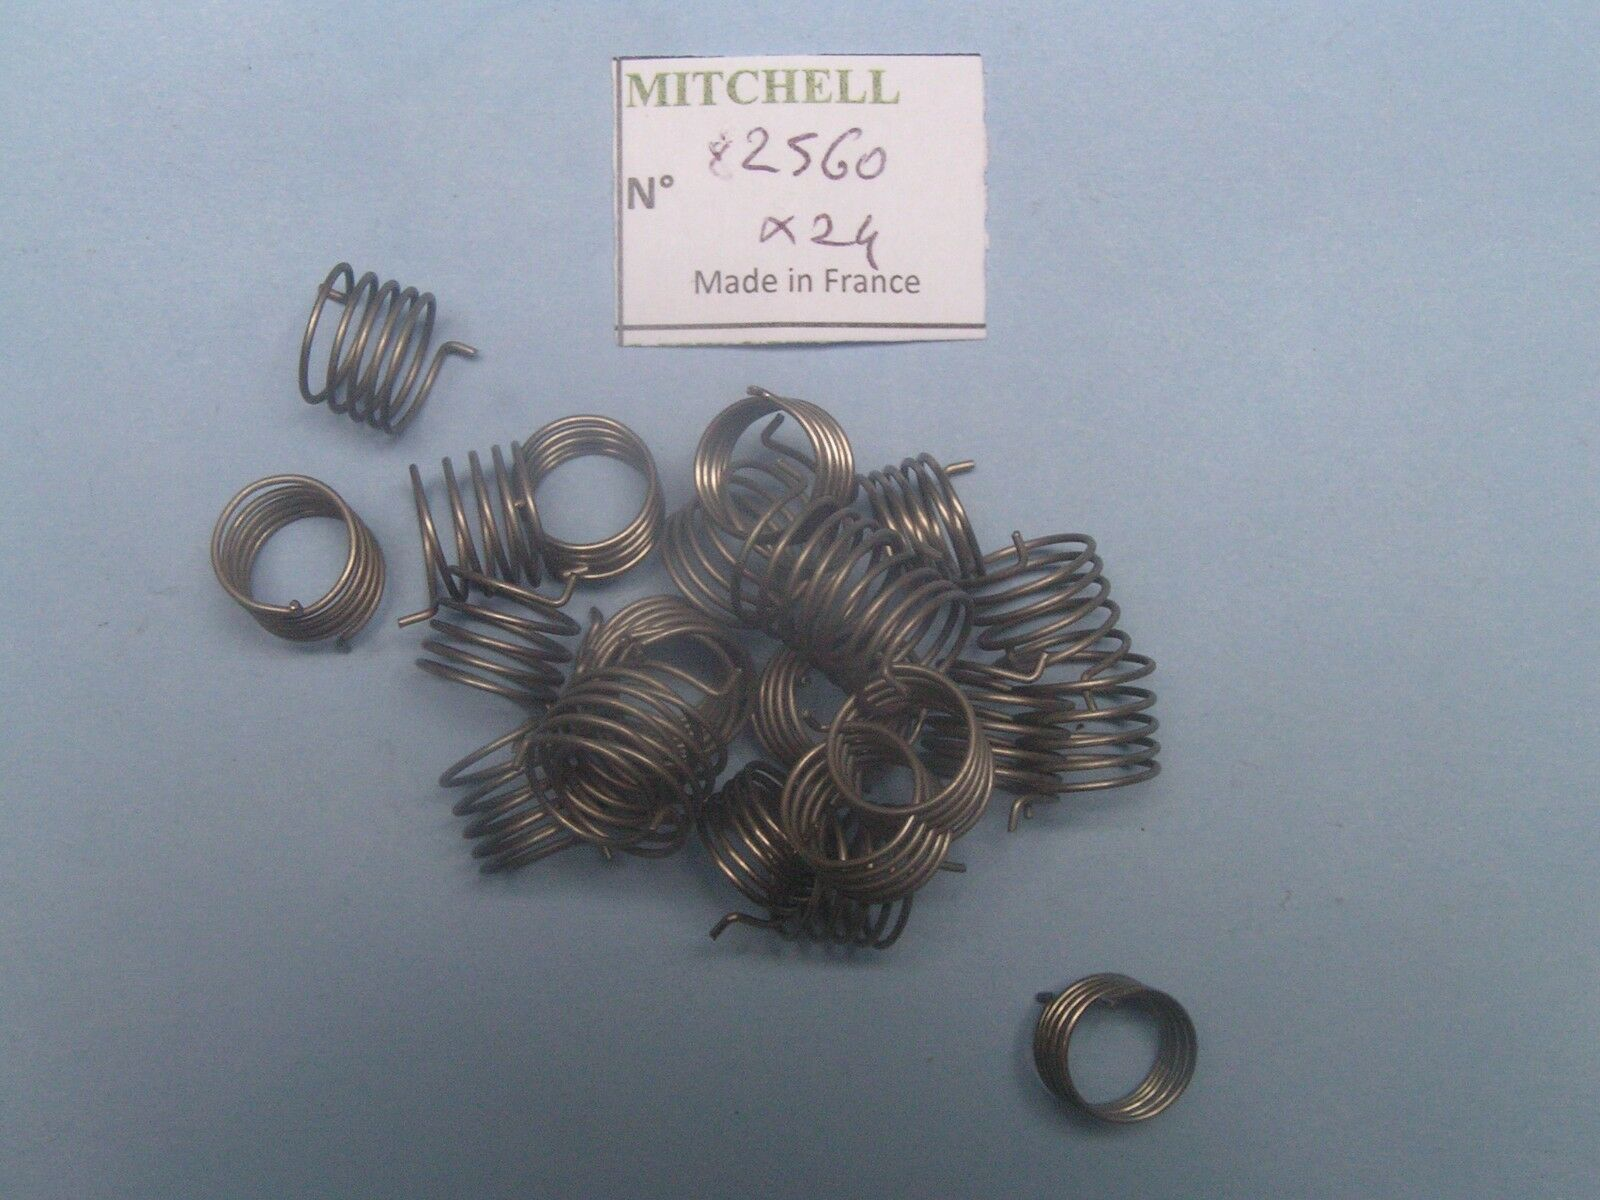 24 BAIL SPRING REEL PART 82560 RESSORT MOULINET MITCHELL 300S 400S 900 910